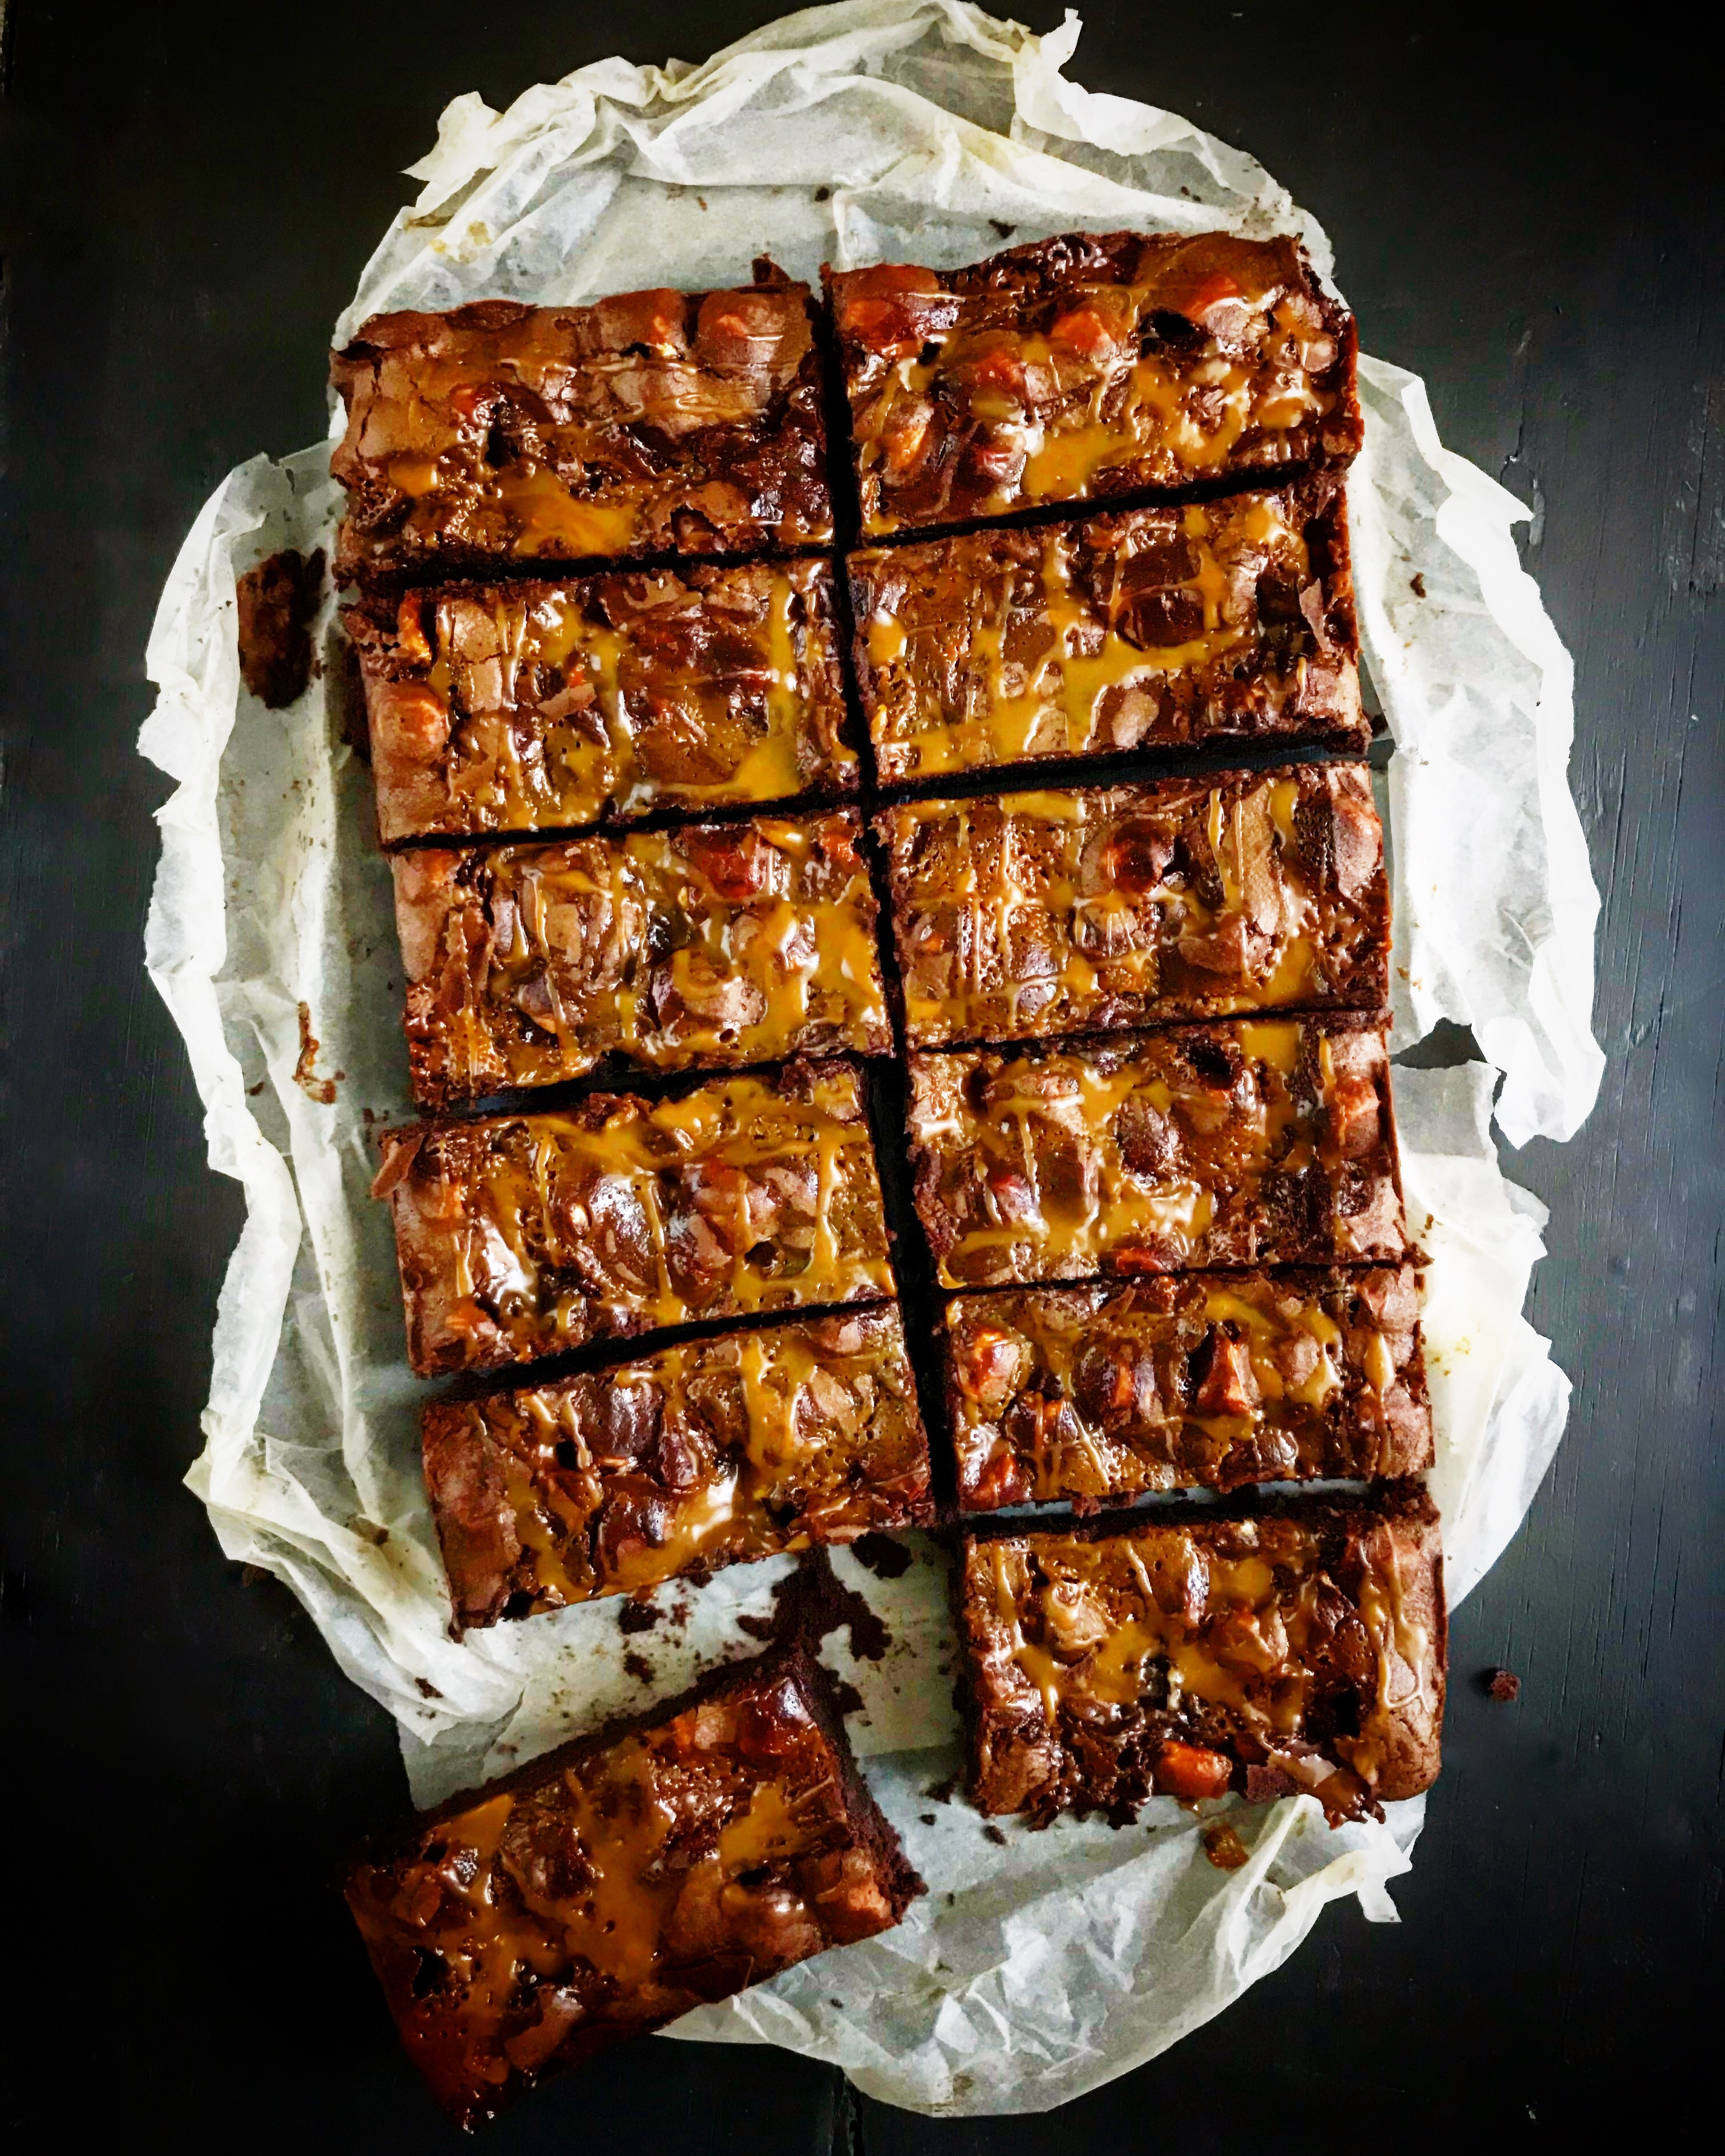 Salted Caramel and Marshmallow Brownies